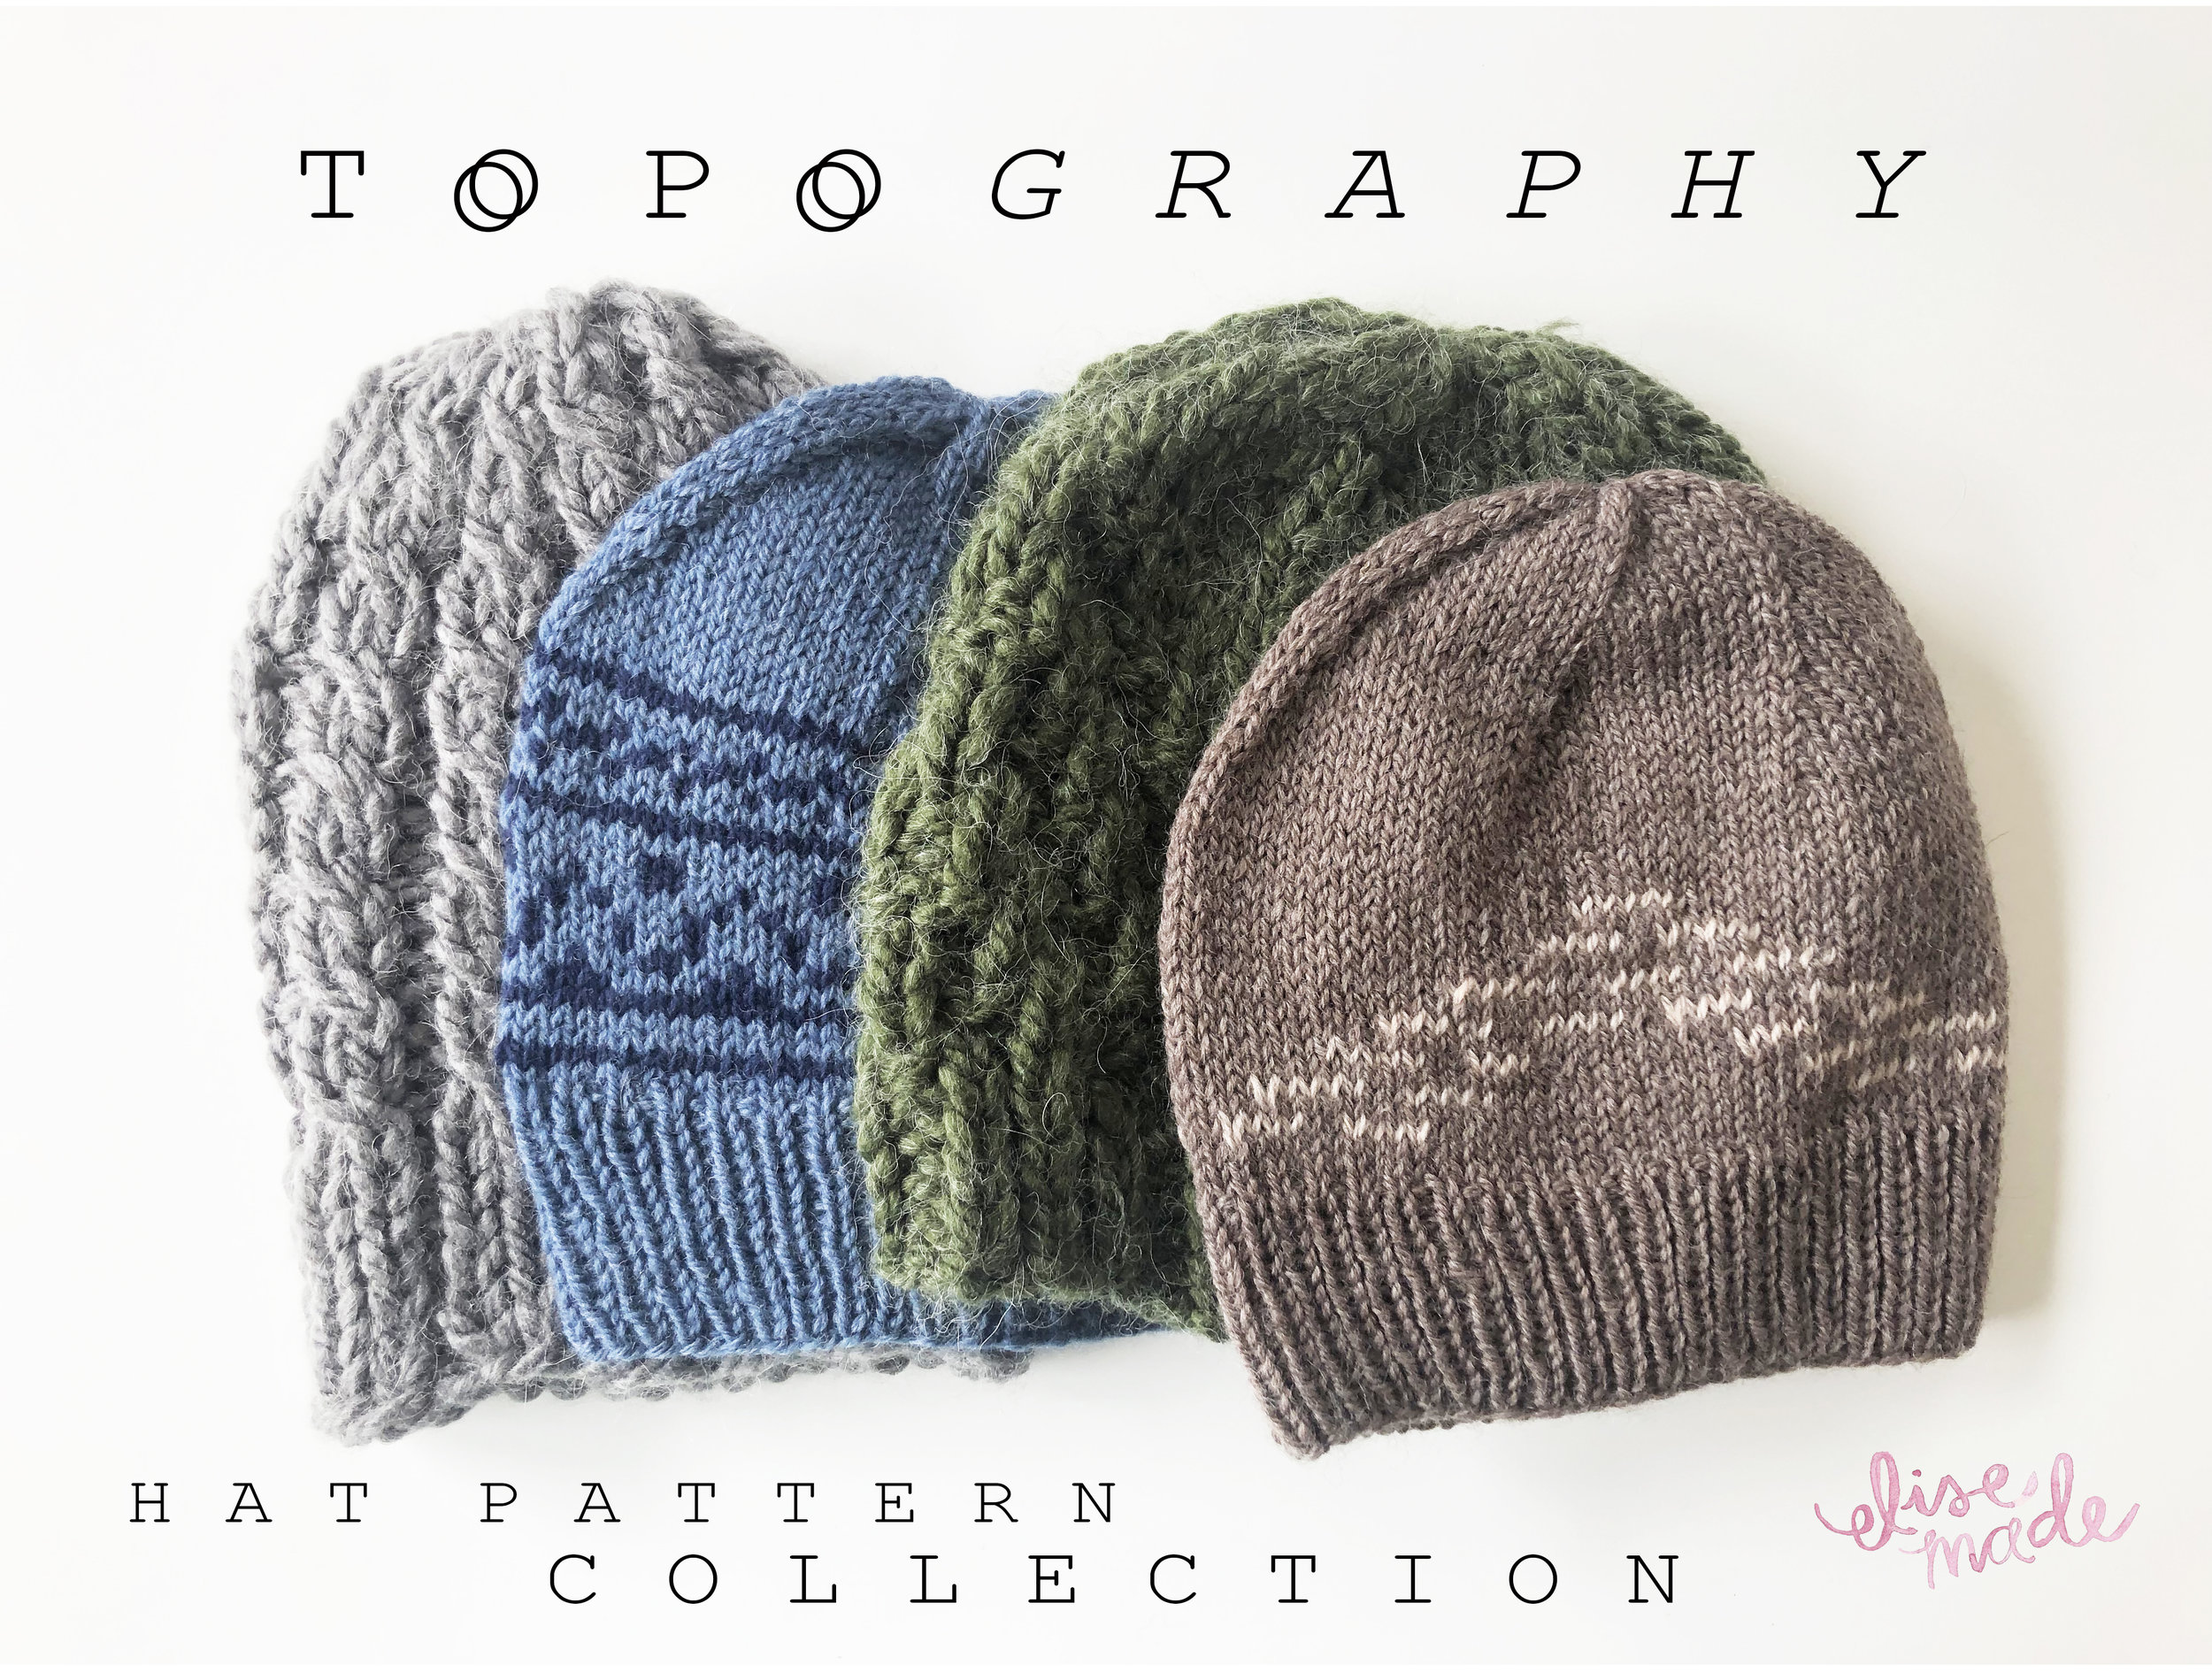 Topography-hat-knitting-pattern-collection-by-elisemade.jpg